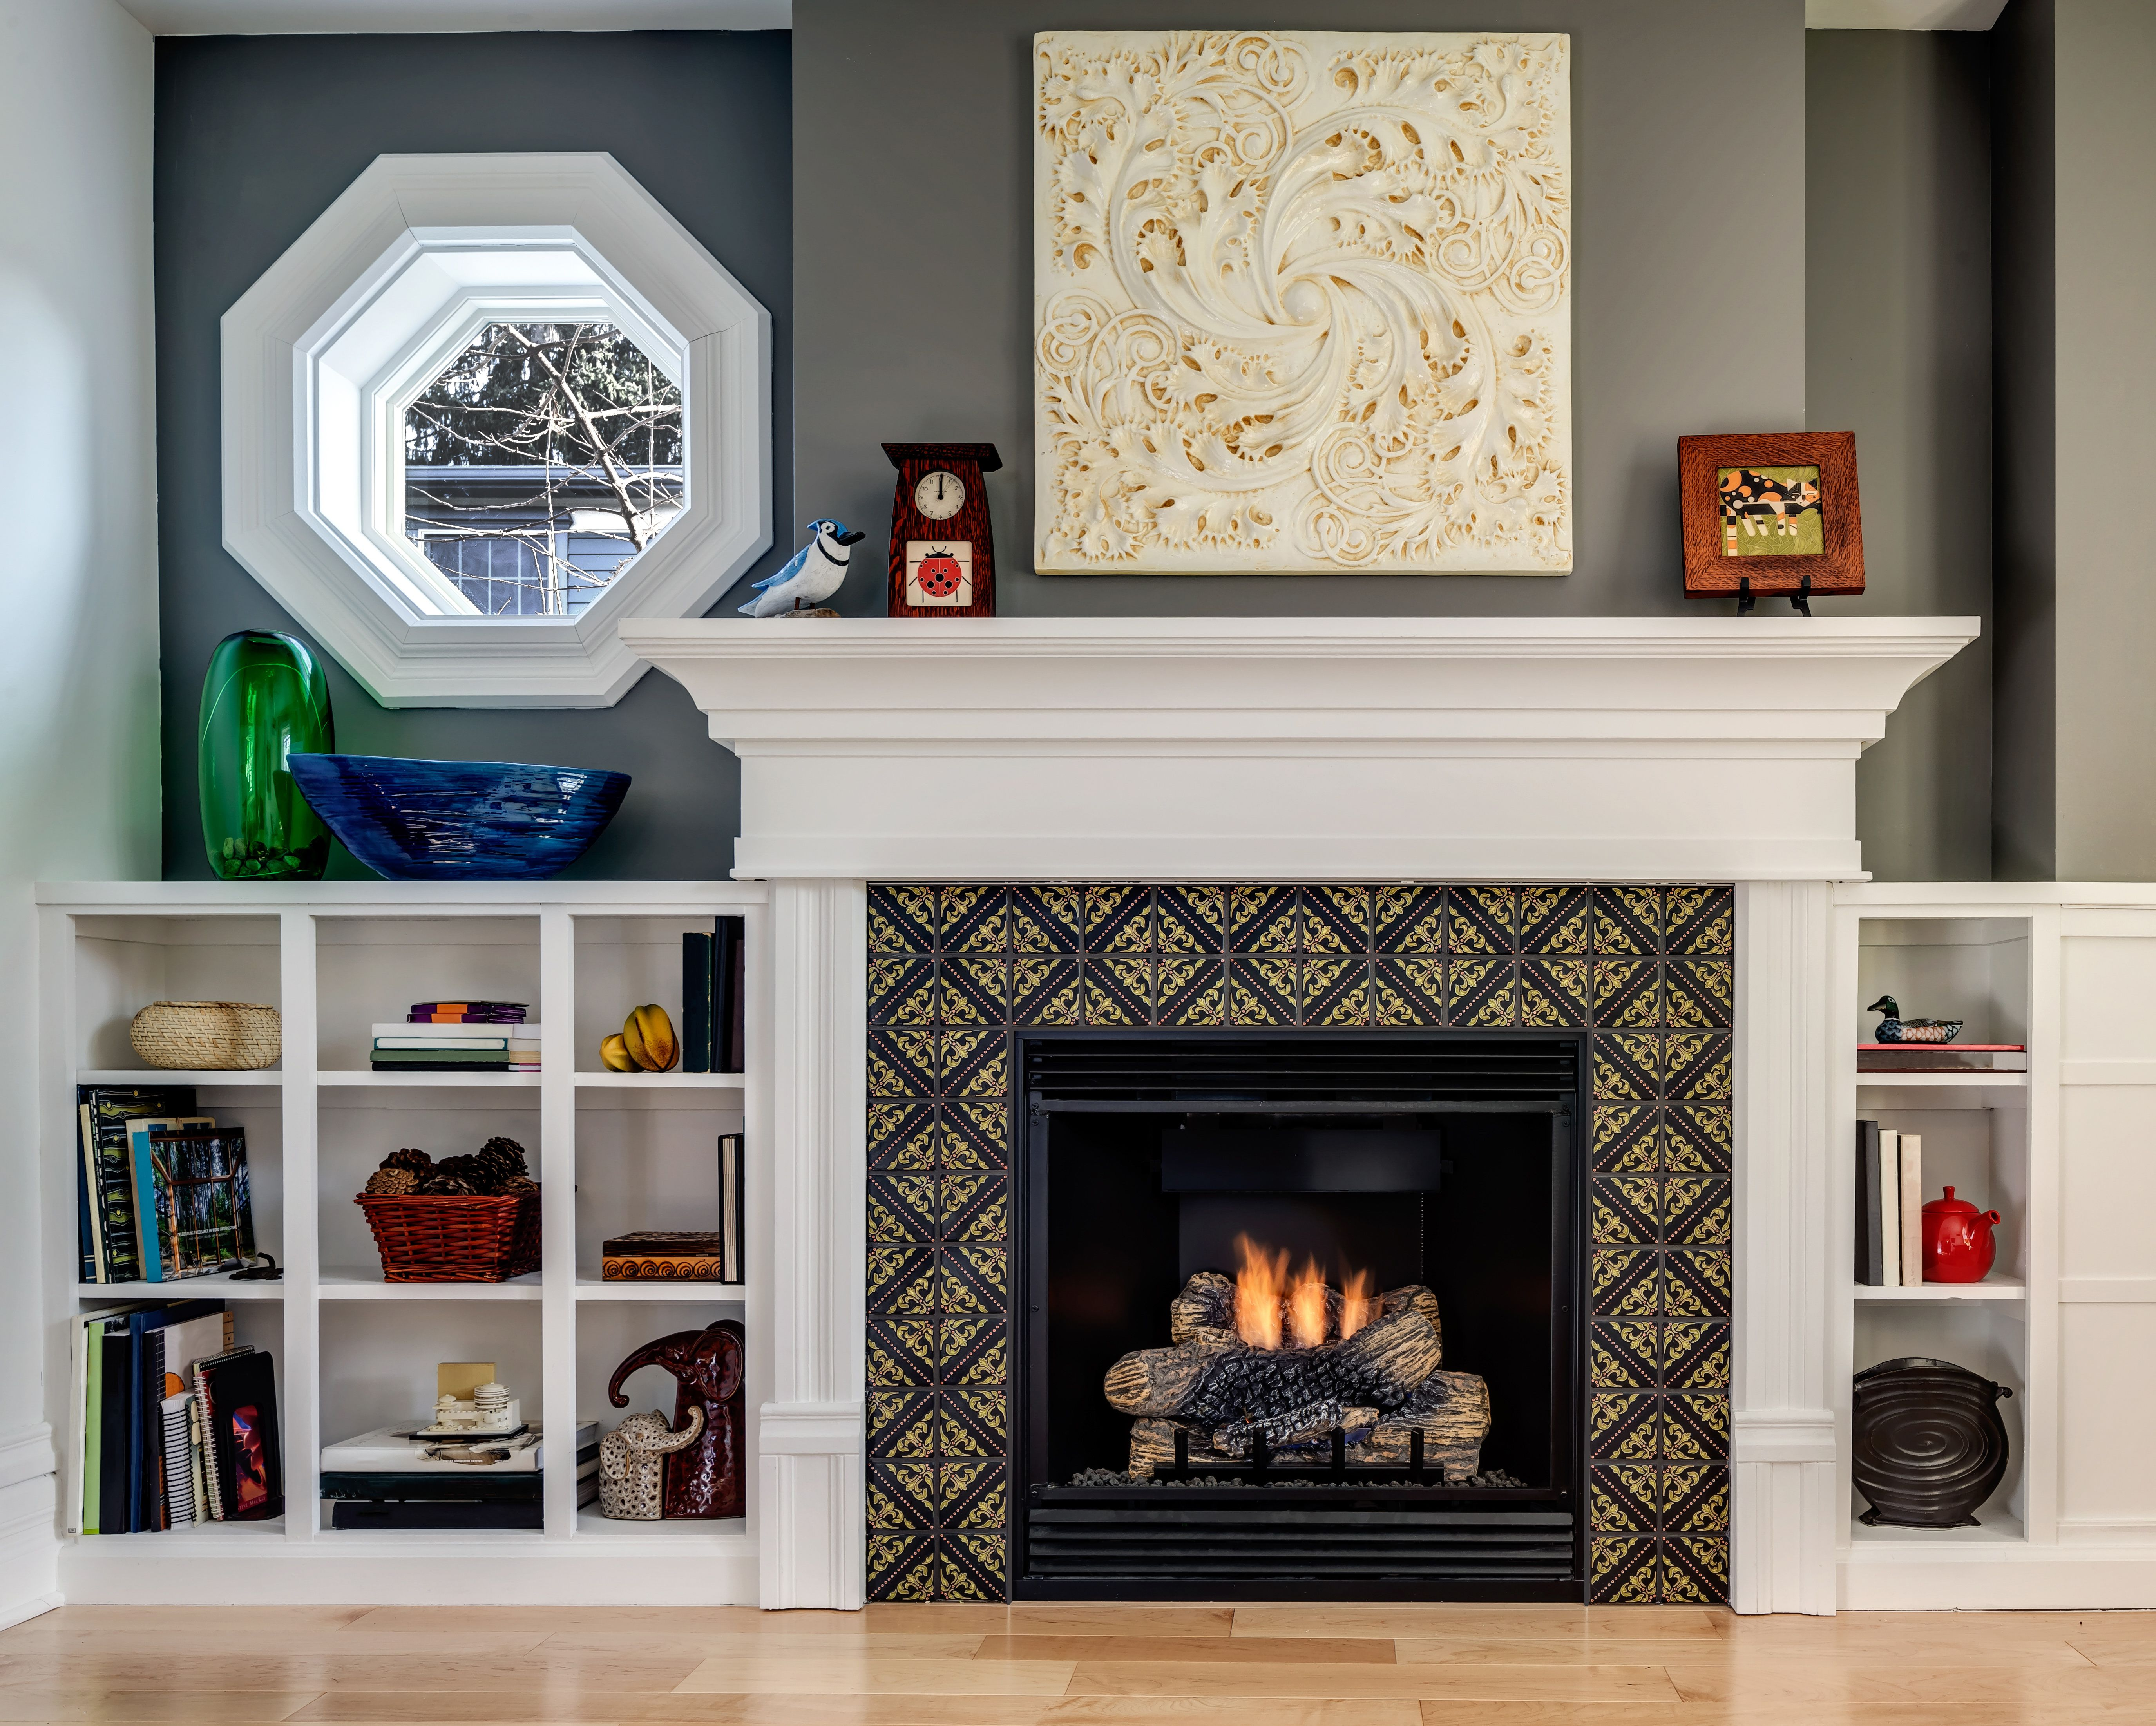 Concrete Tile Fireplace Inspirational This Small but Stylish Fireplace Features Our Lisbon Tile